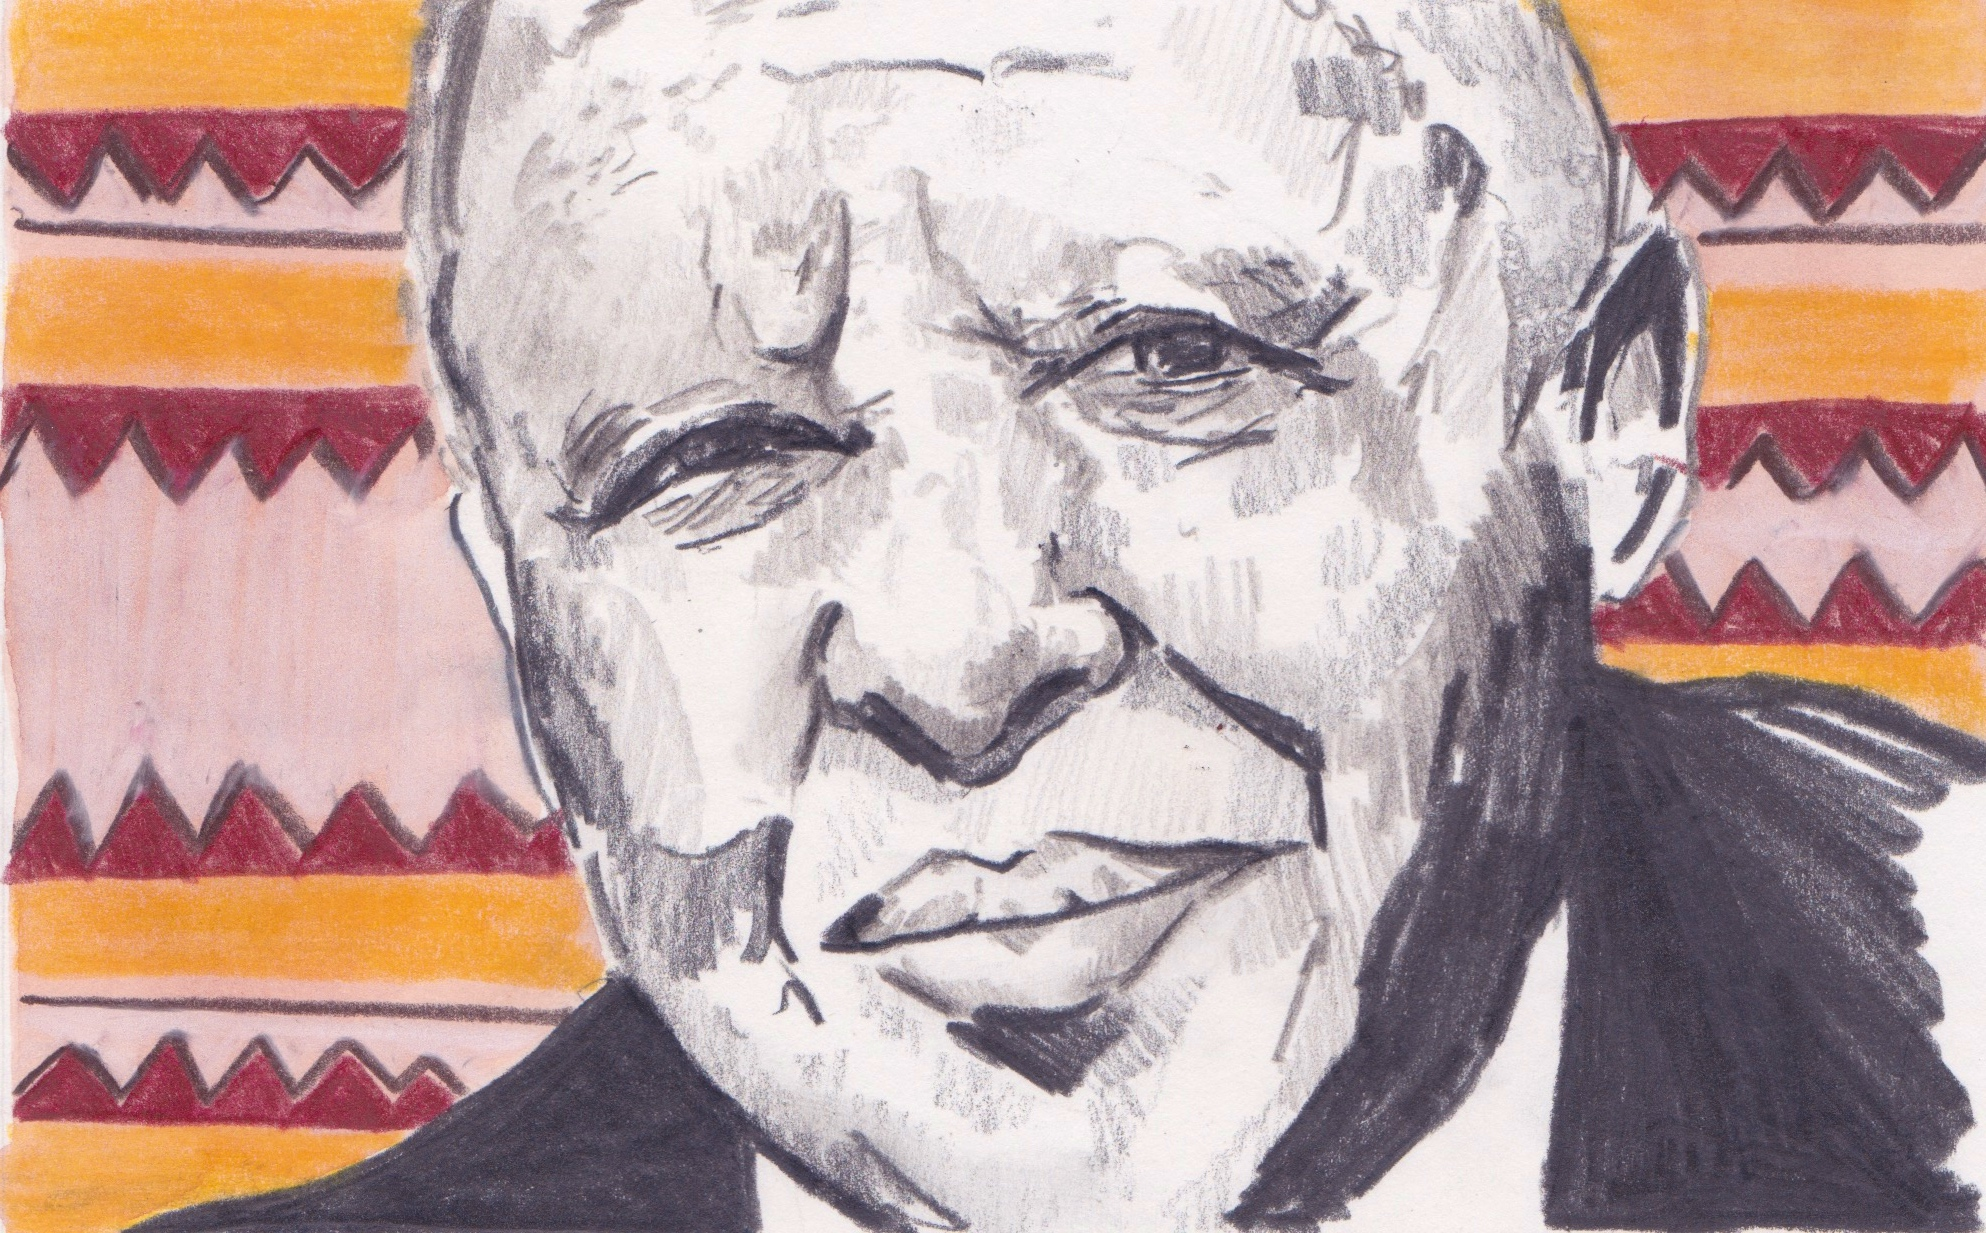 08/05/15 Festus G Mogae, the former President of Botswana founded 'Champions for an AIDS-Free Generation' in recognition that sustained leadership is one of the most important elements in the AIDS response. During his 10 years in office, Mr Mogae was one of the first Heads of State to publically test for HIV, he paved the way for universal access to antiretroviral therapy in Botswana, and he introduced routine HIV testing into the public health sector—a seemingly risky initiative that has since been proven a major success